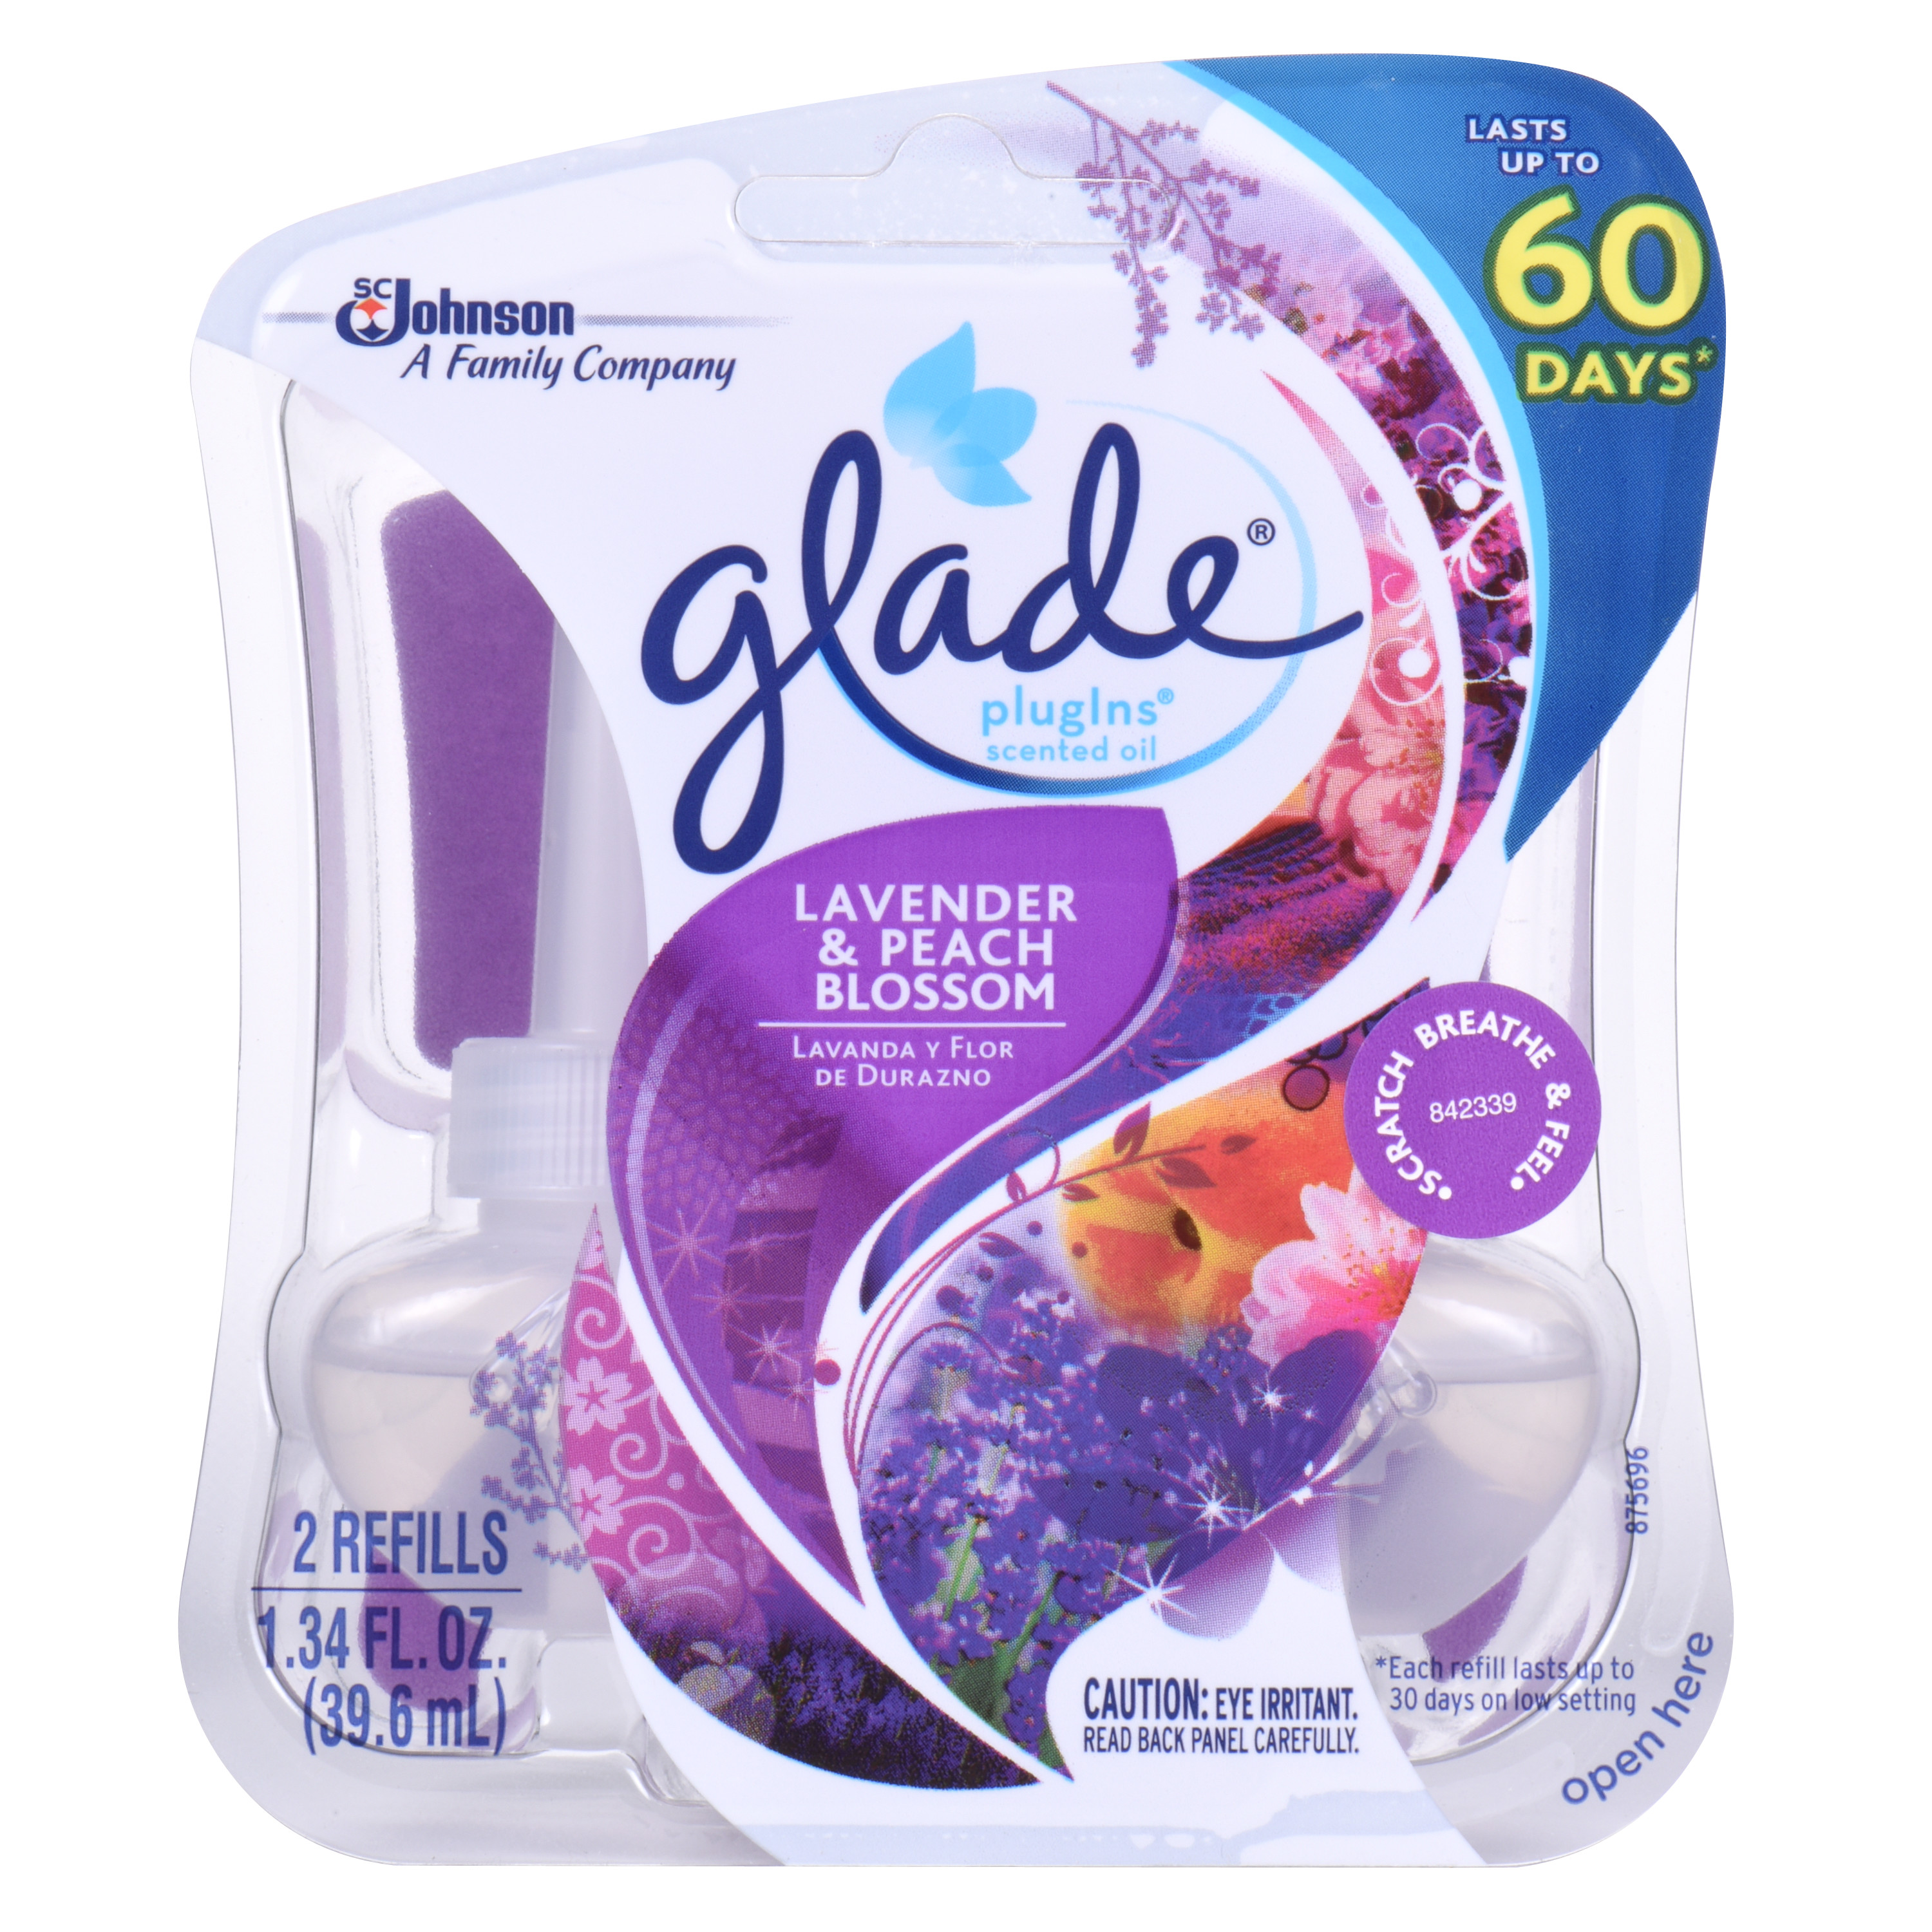 Glade PlugIns Scented Oil Air Freshener Refill, Lavender & Peach Blossom, 2 count, 1.34 Ounces